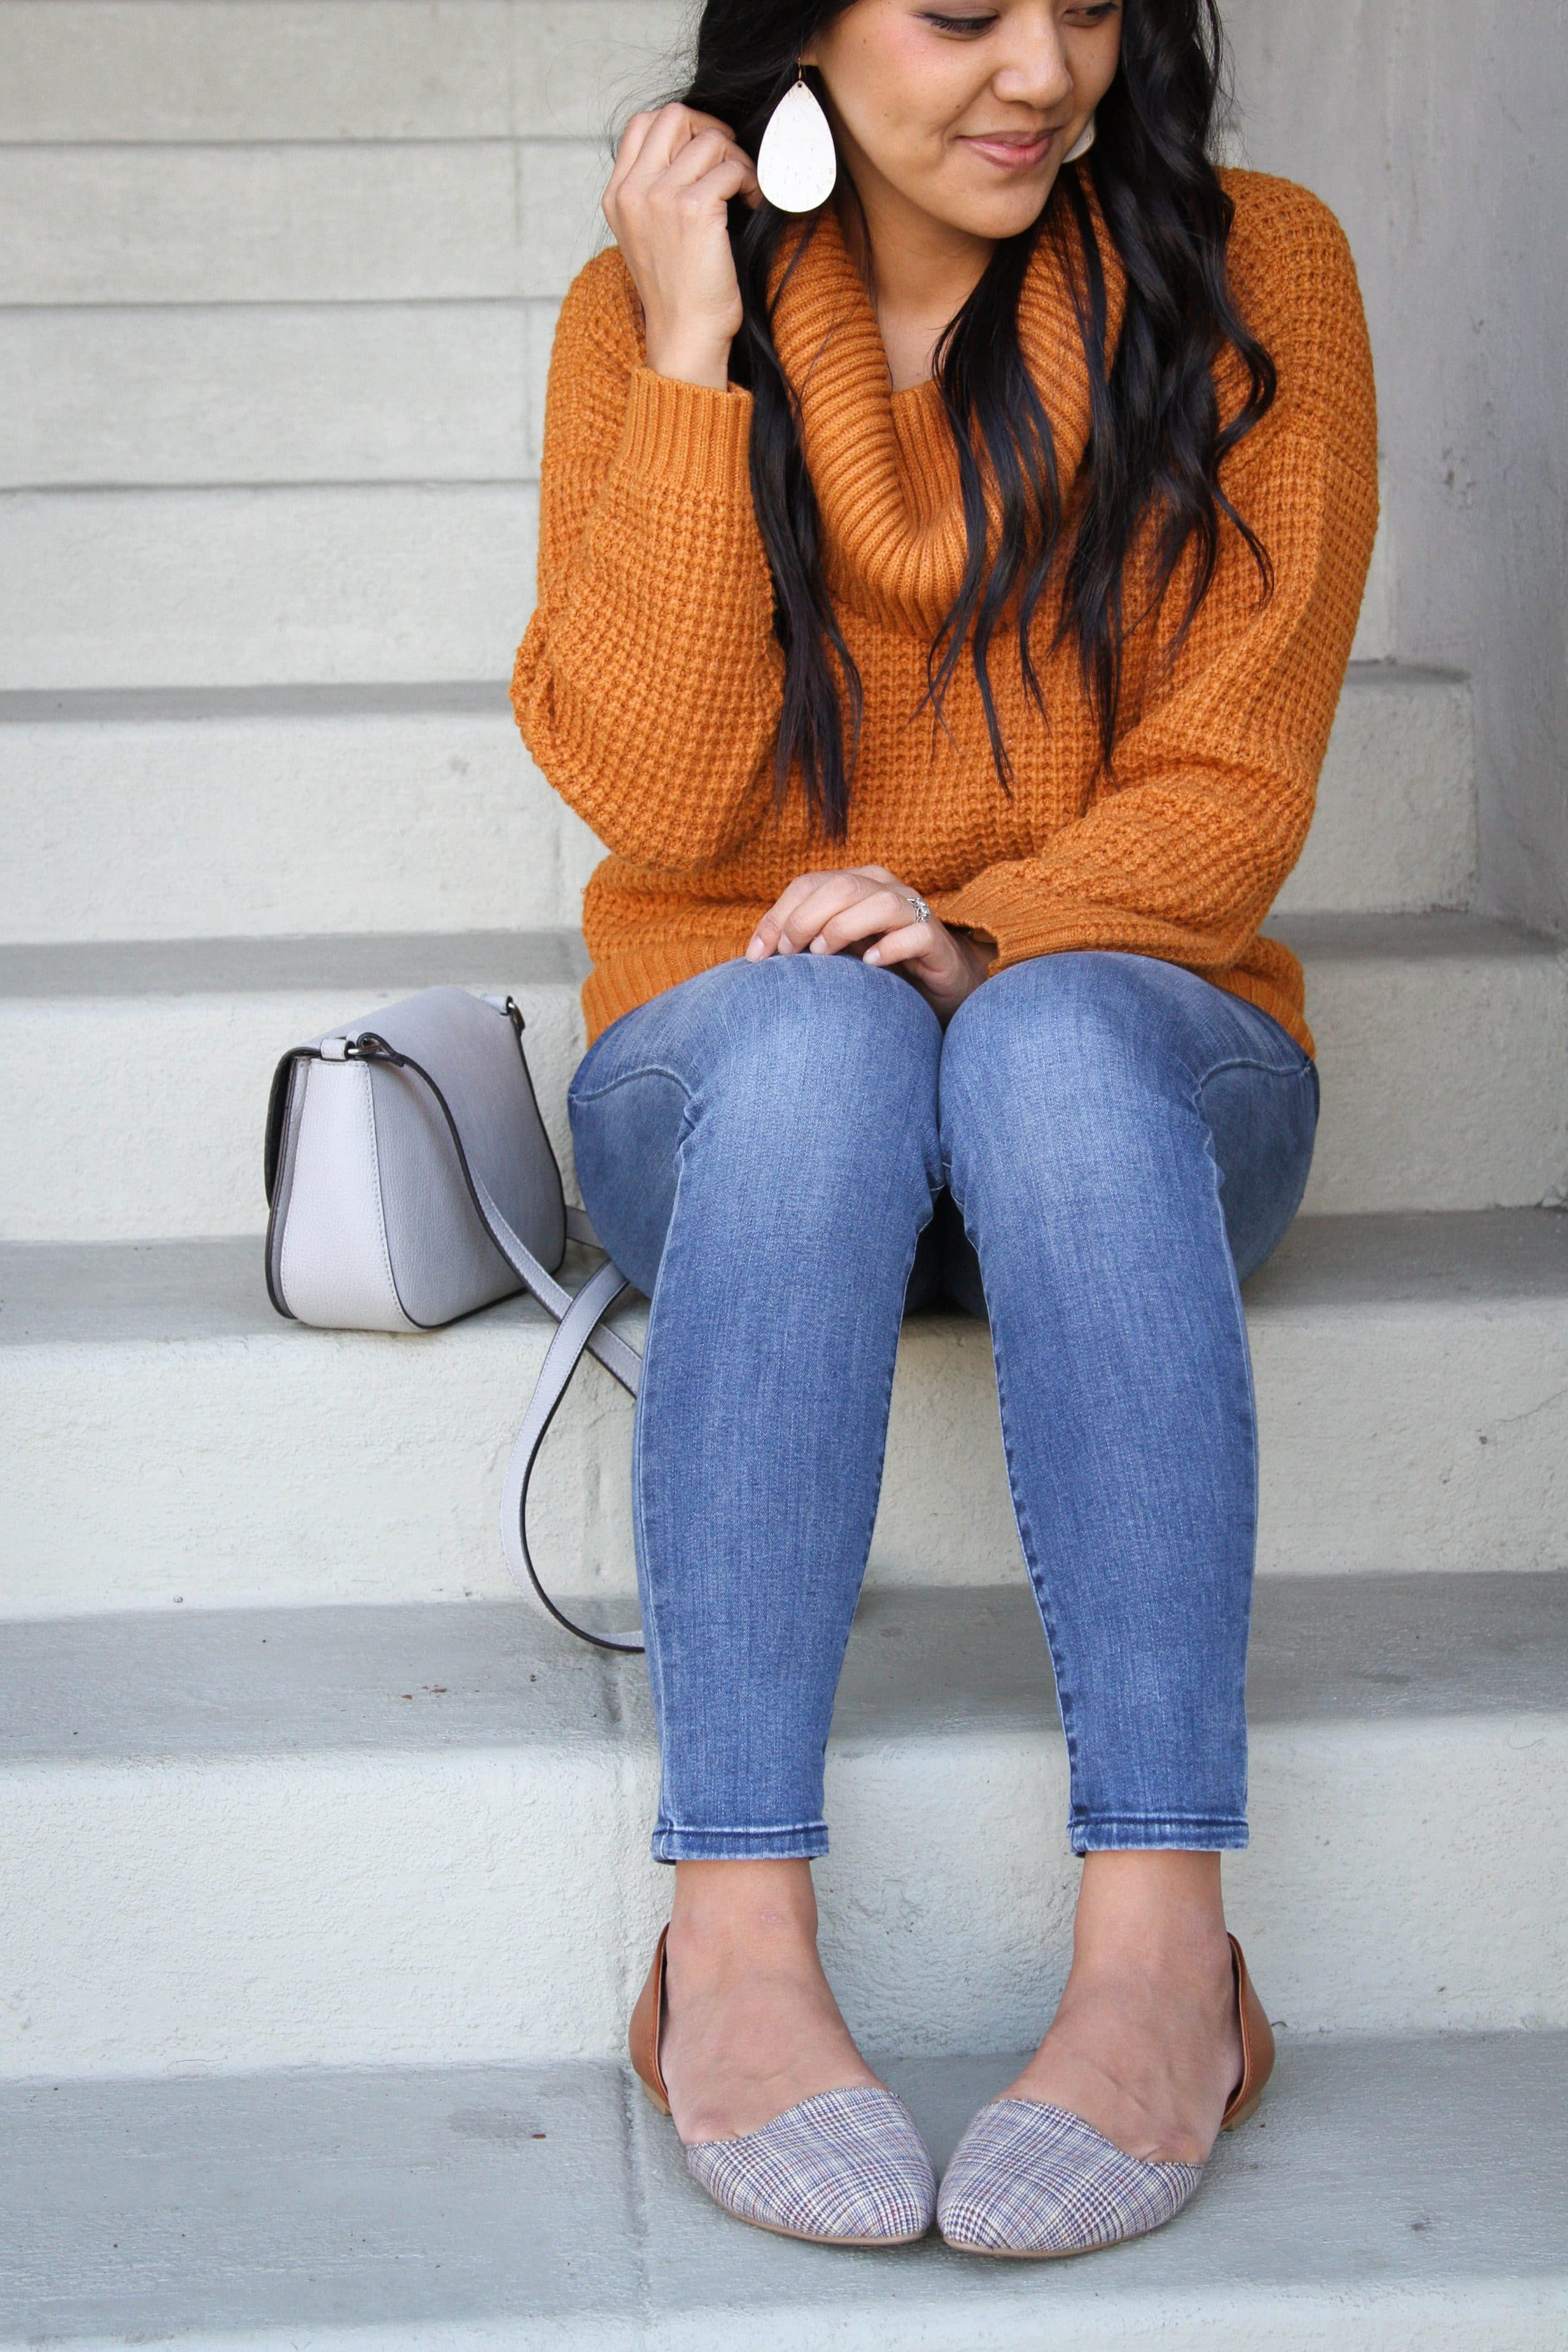 Light jeans + Printed Flats + Fall Sweater + Gray bag